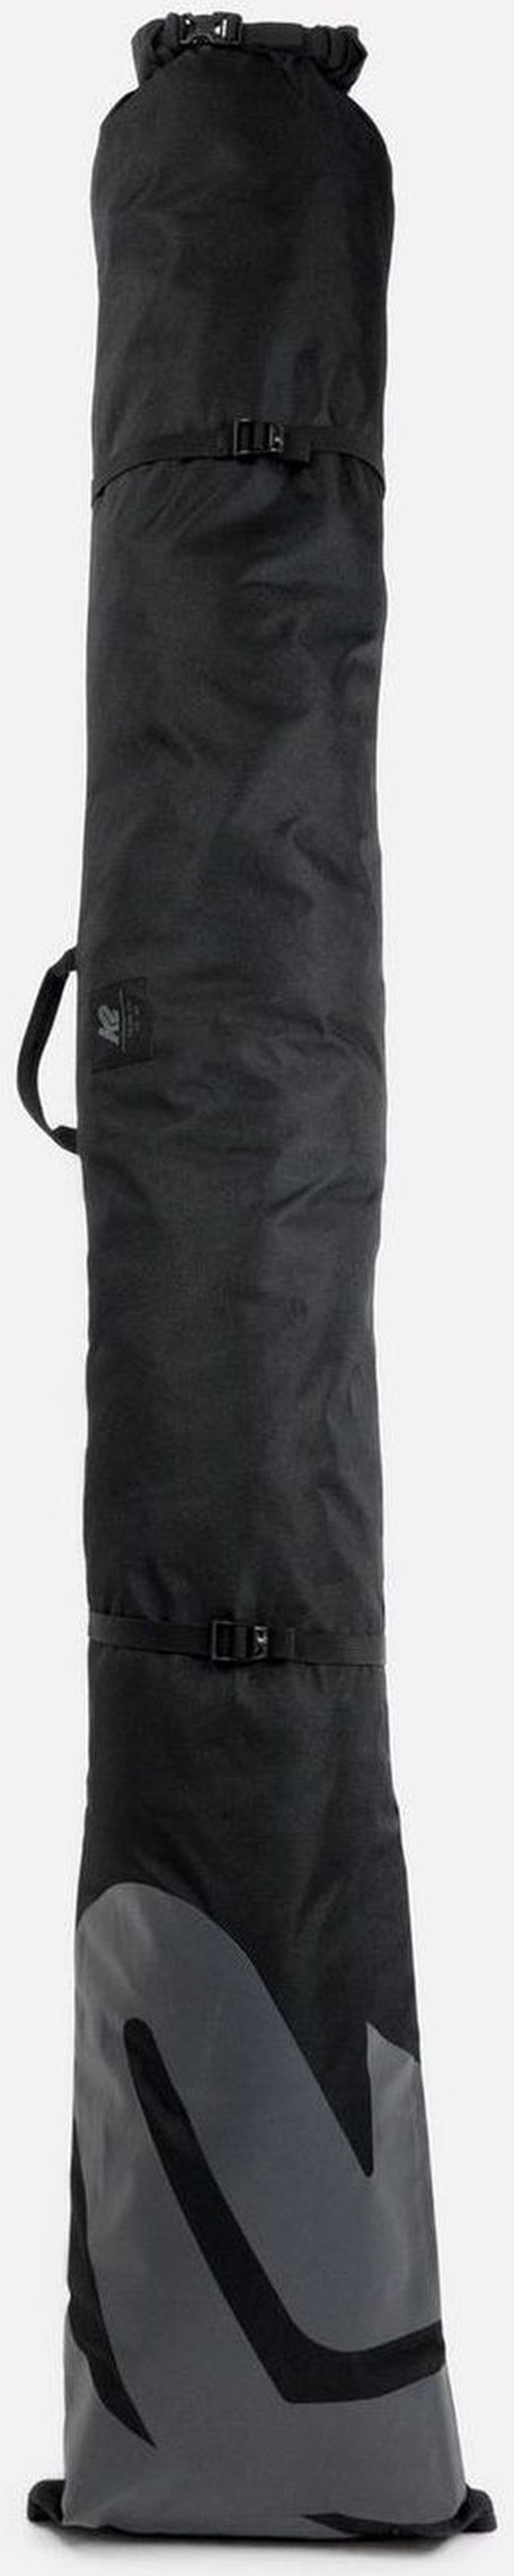 K2 Ski Sleeve Bag - Black 175